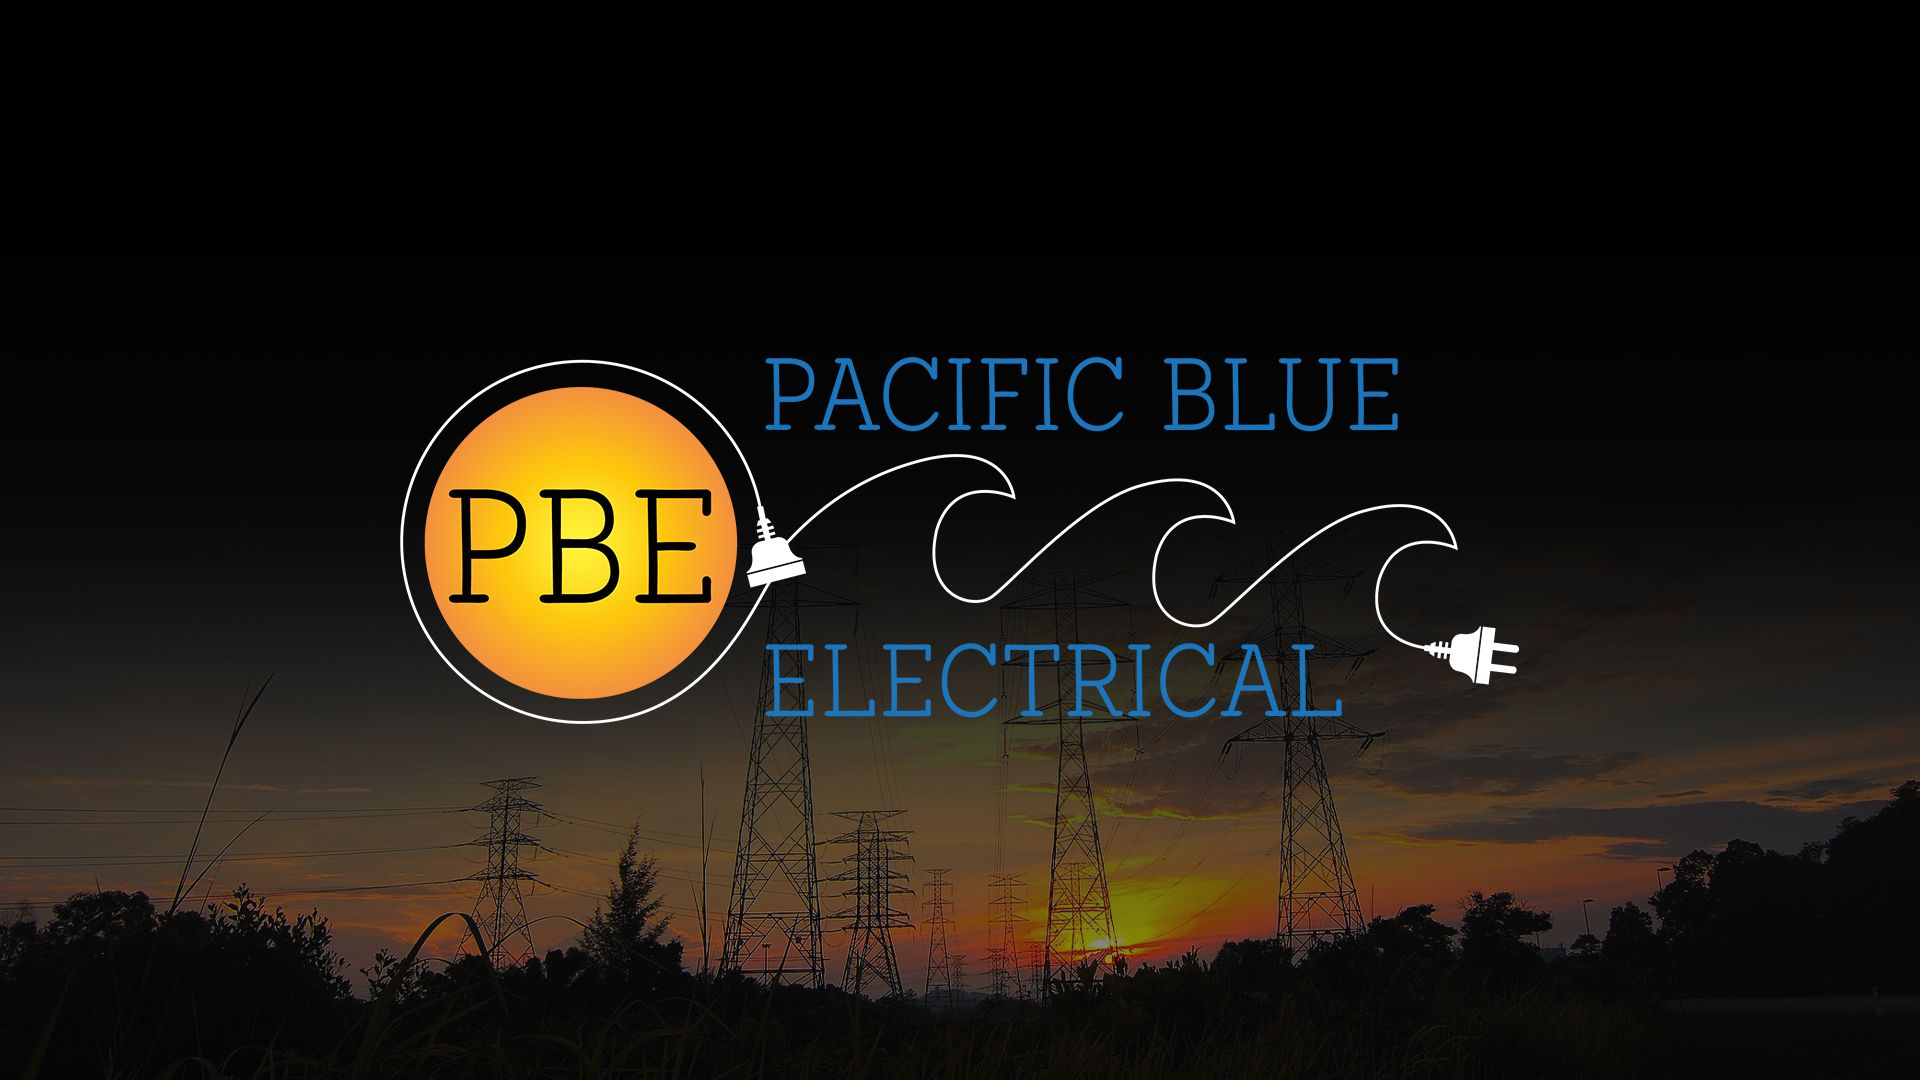 Website Development for Pacific Blue Electrical